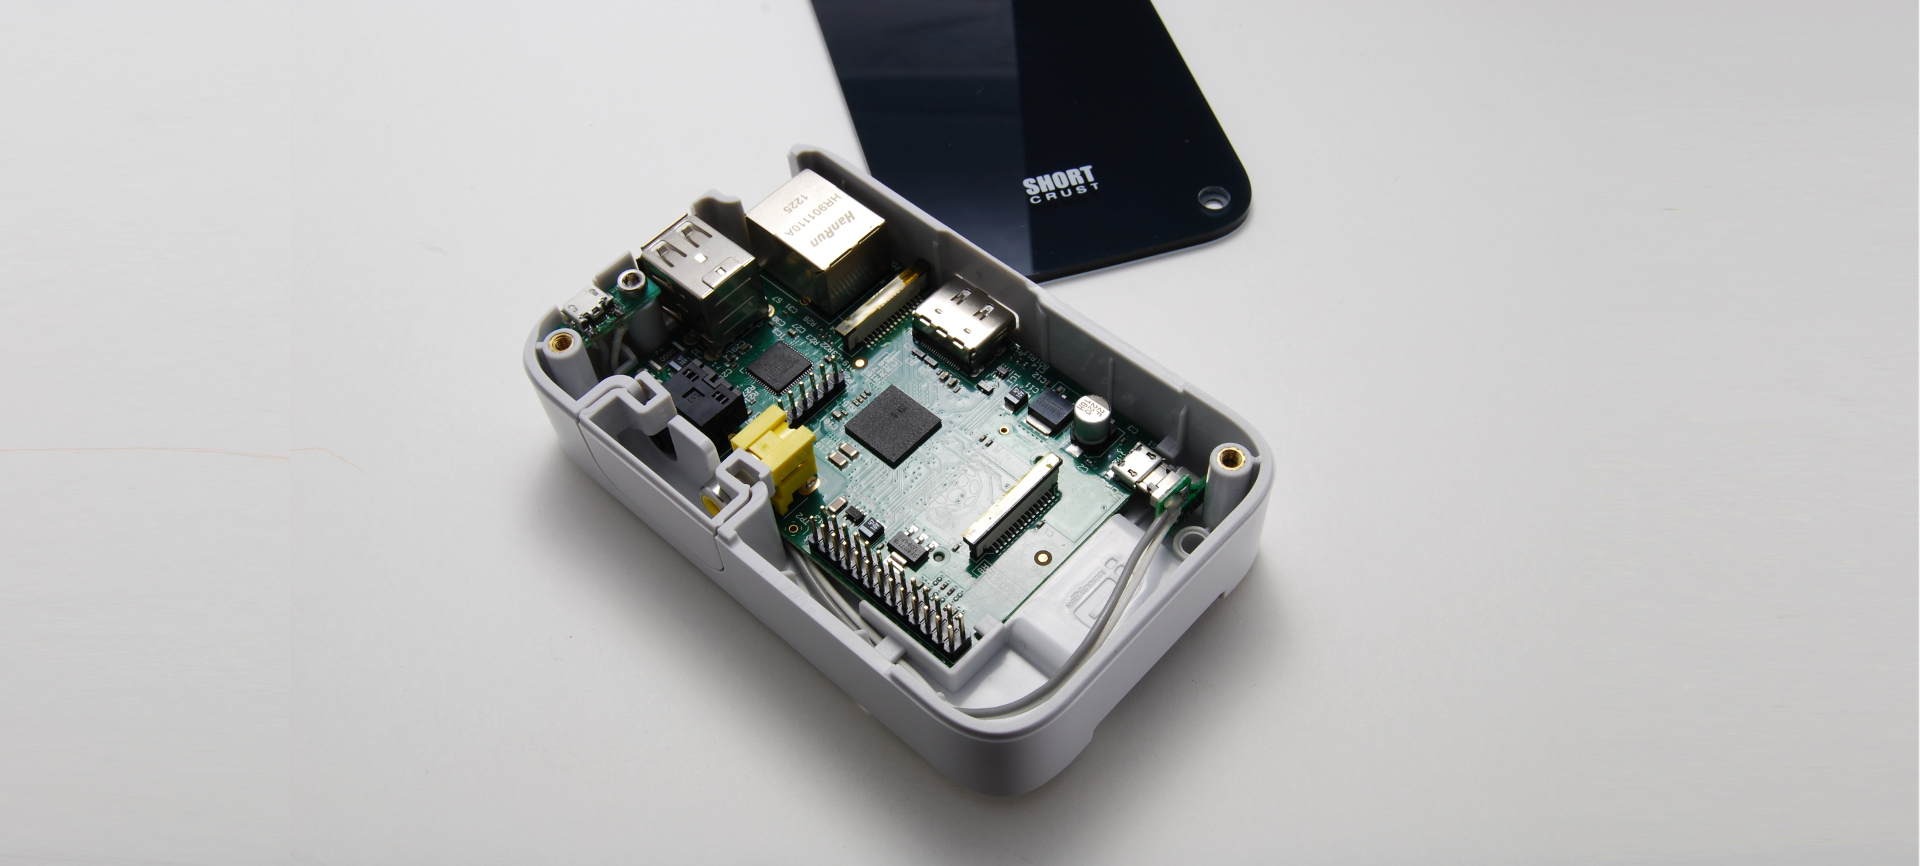 Raspberry Pi snaps easily and securely into the case, no rattling and easily removable. Internal through holes for M3 or M4 screws to mount the case to your project, and brass insert threads for attaching the cover (or anything else you might make) to the top.